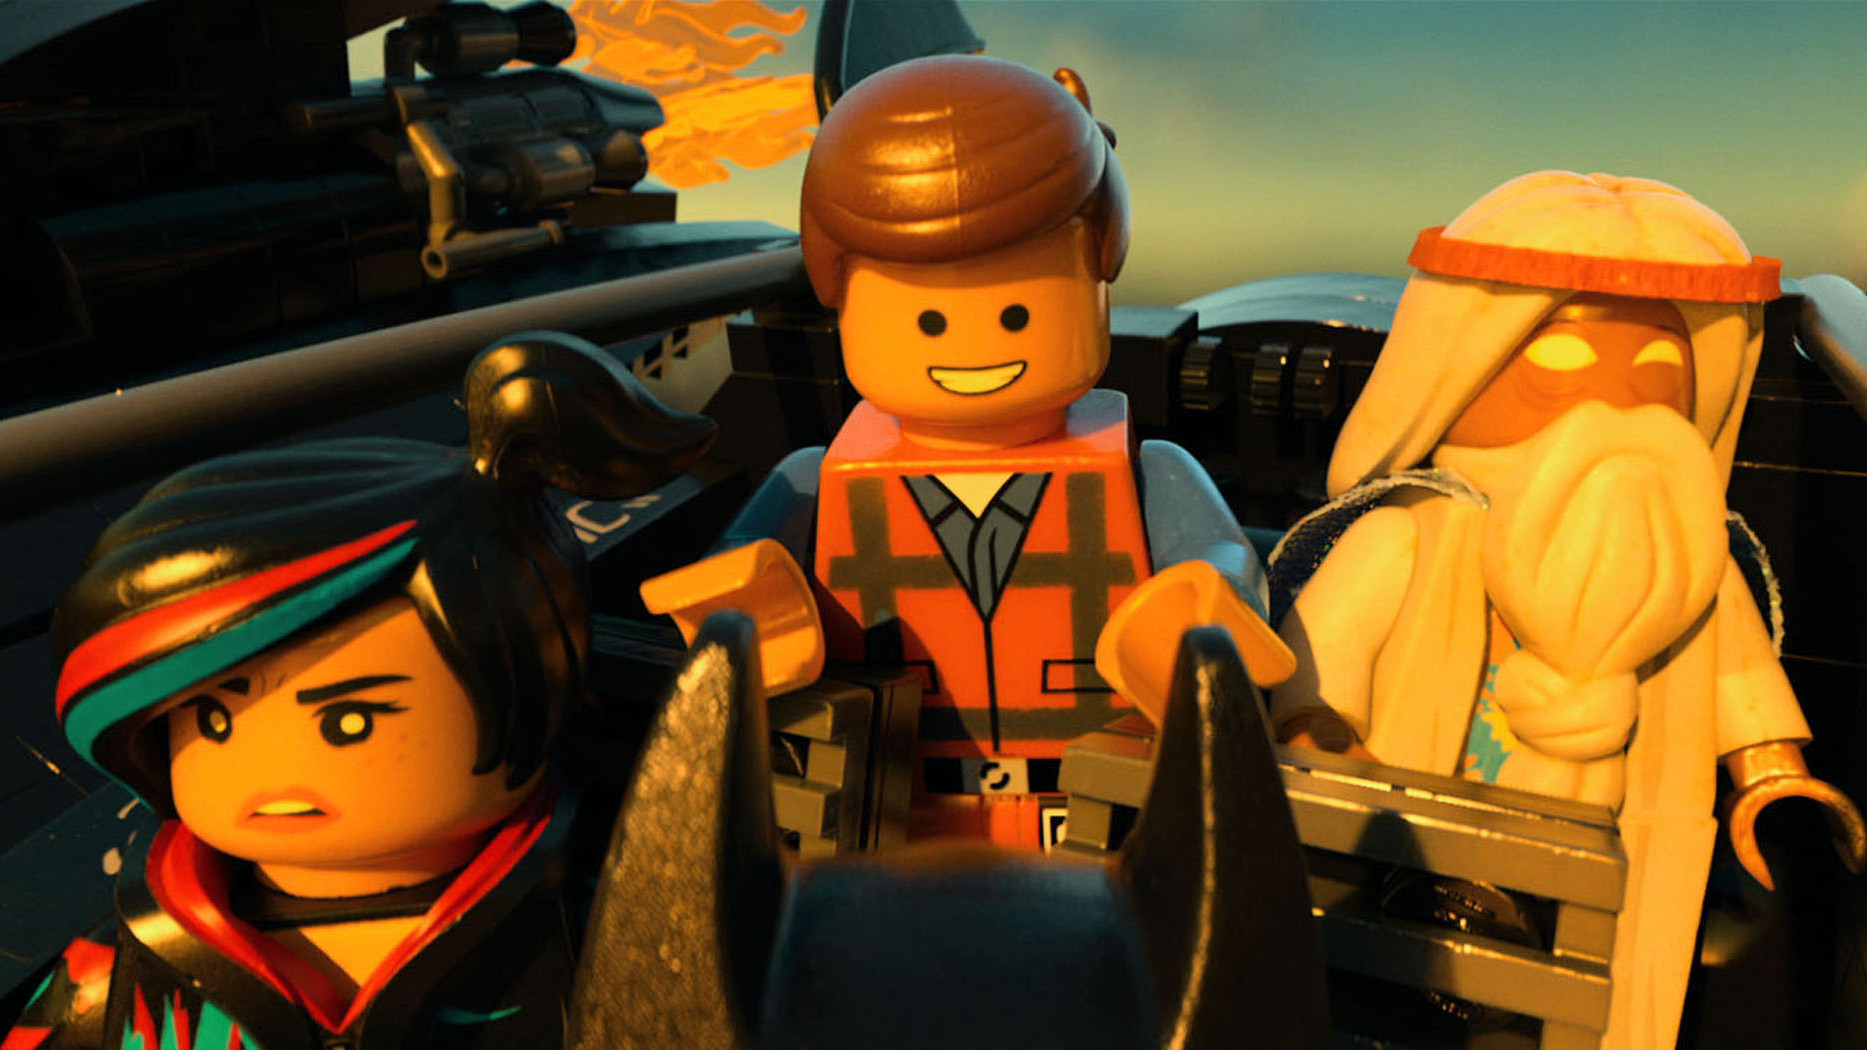 Scene from 'The Lego Movie.'